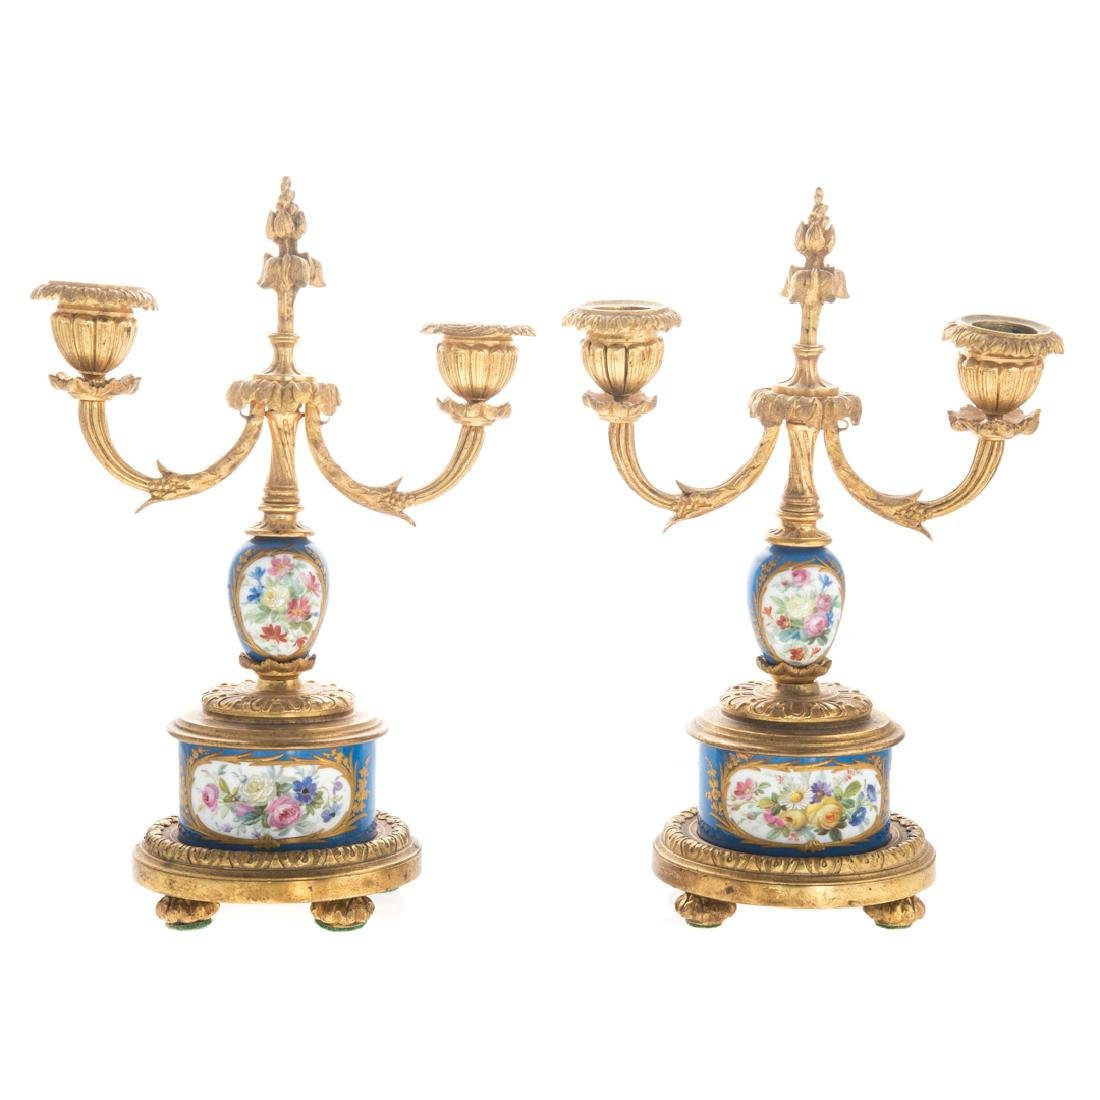 Louis XVI style clock garniture - 7